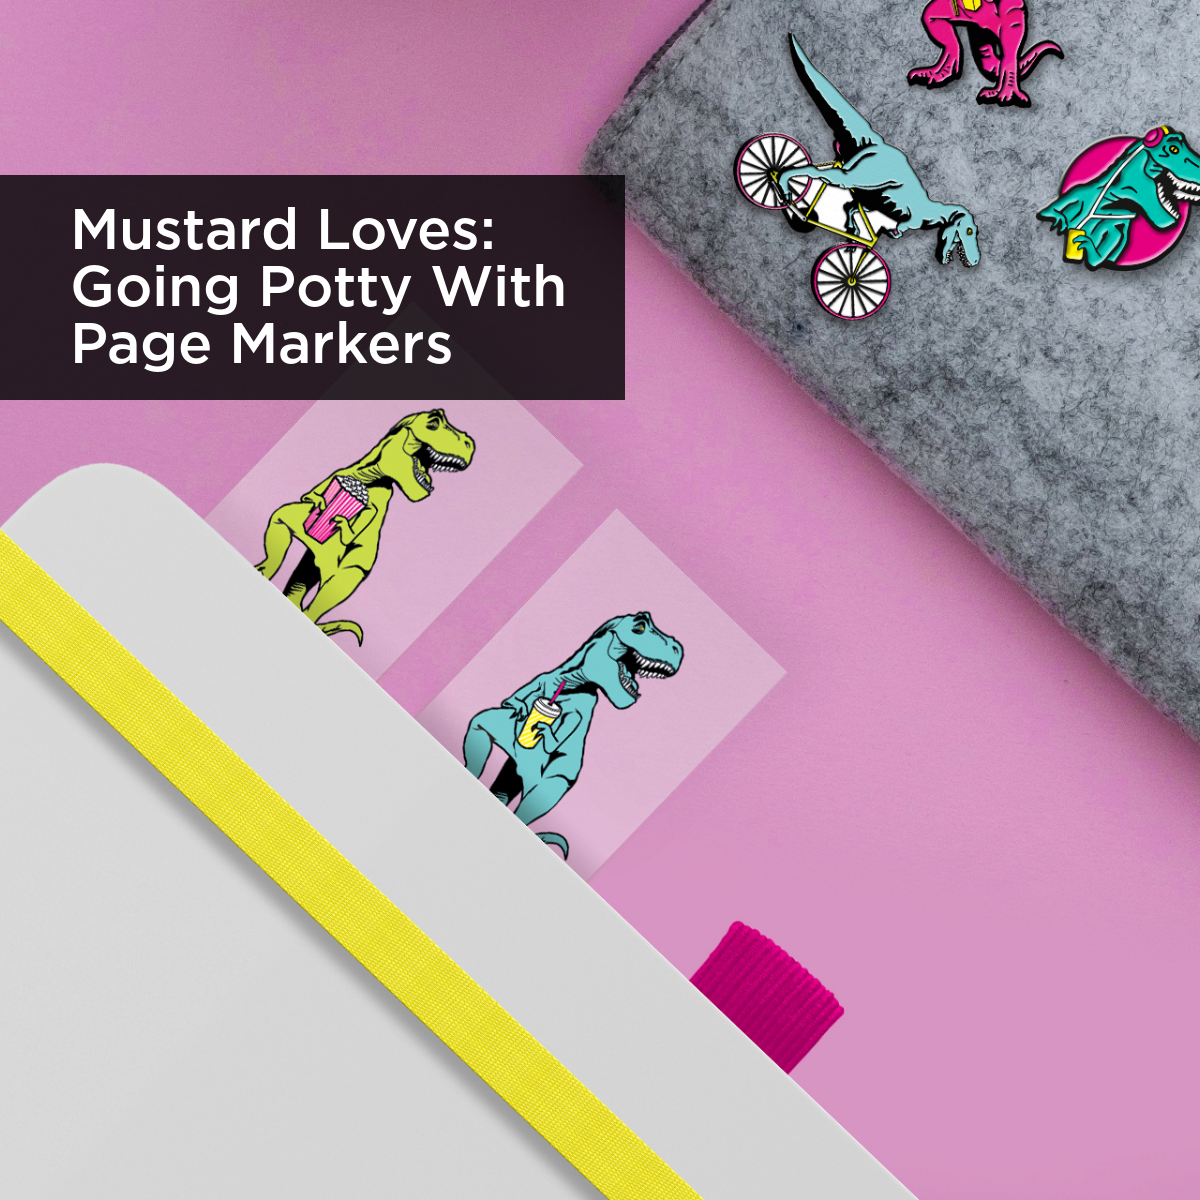 Mustard Loves Going Potty With Page Markers